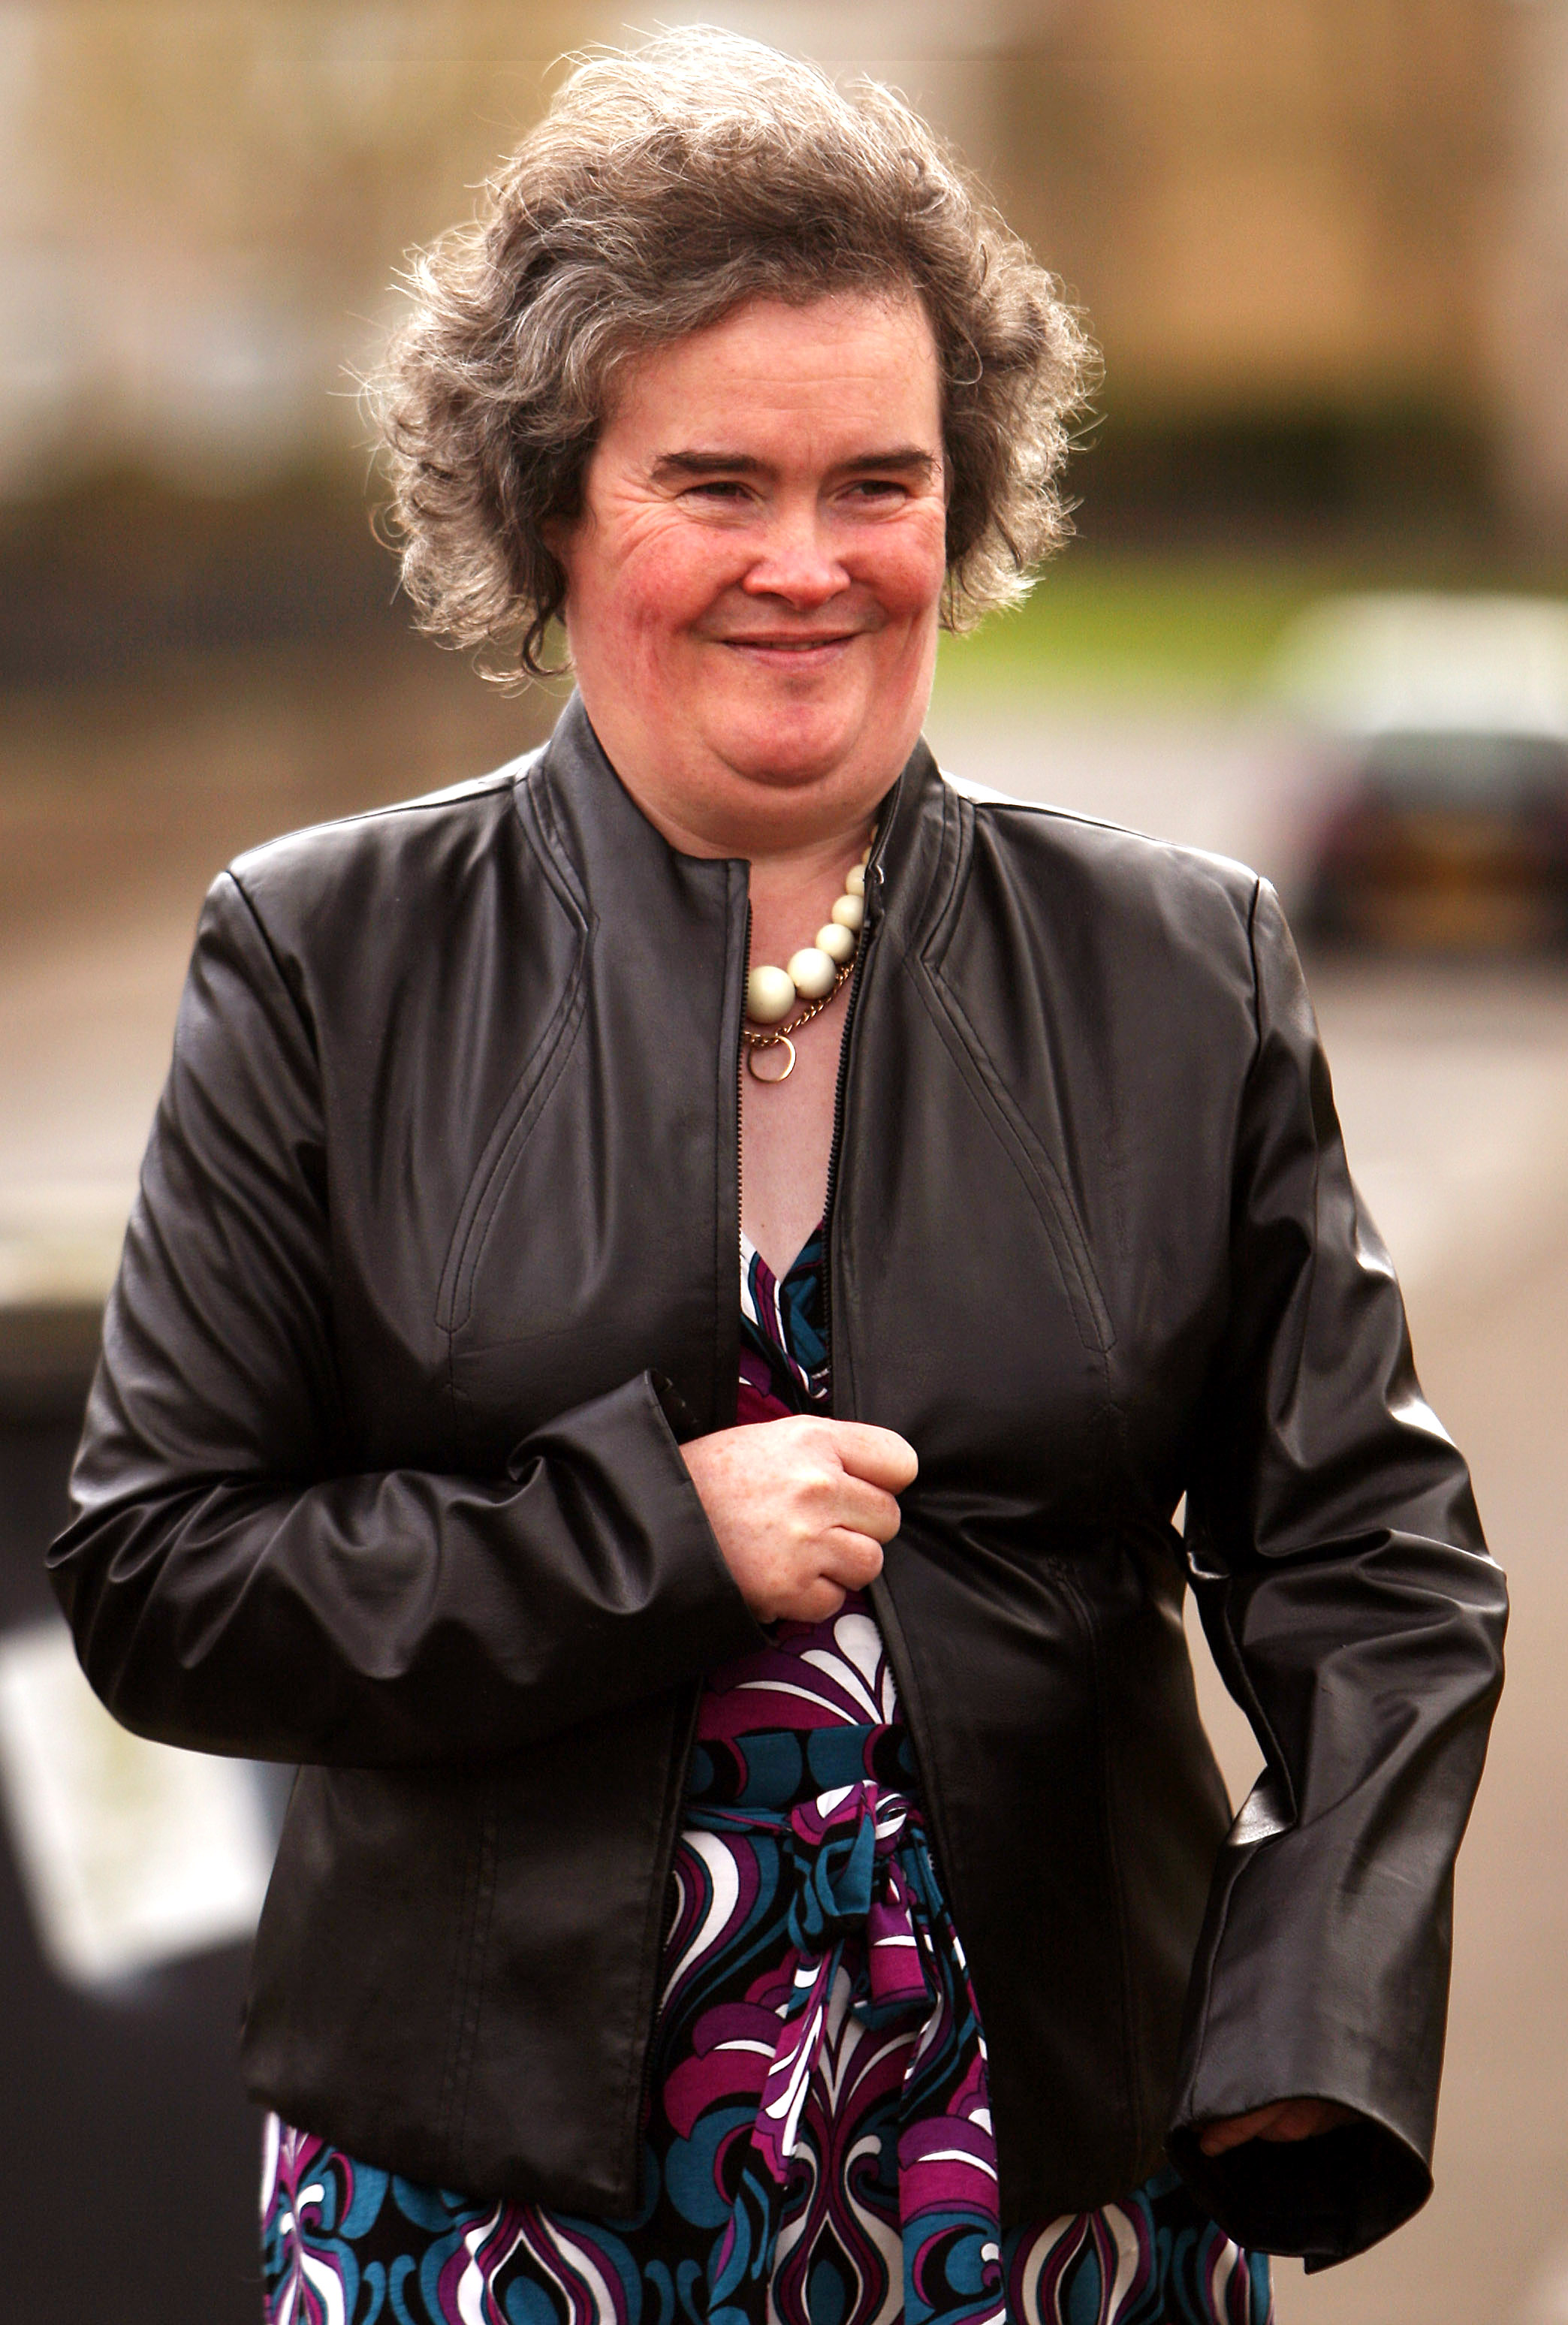 3. Susan Boyle's Many Makeovers